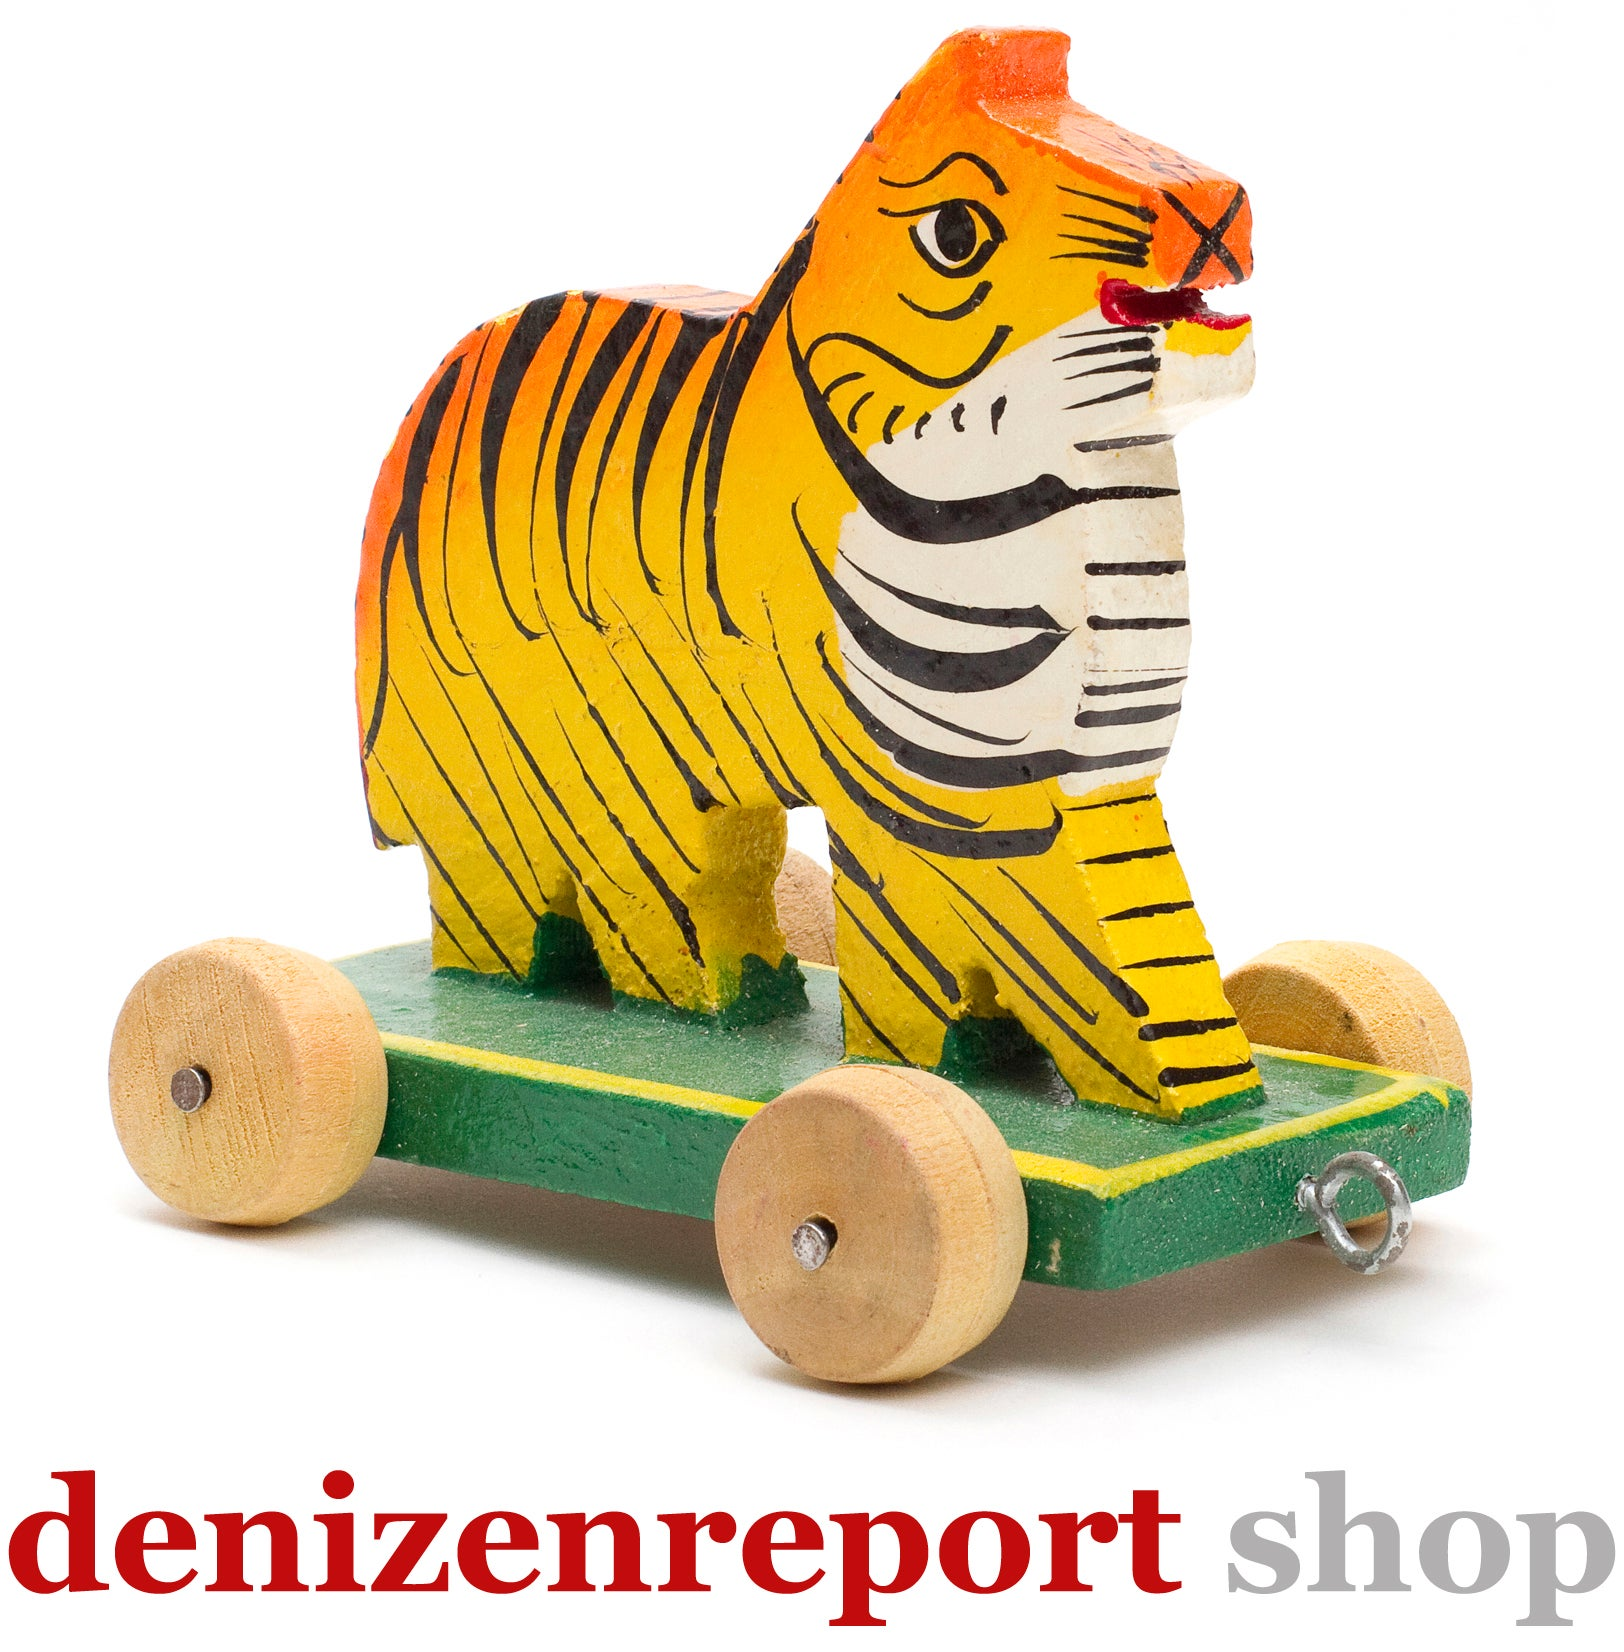 Denizen Report Shop